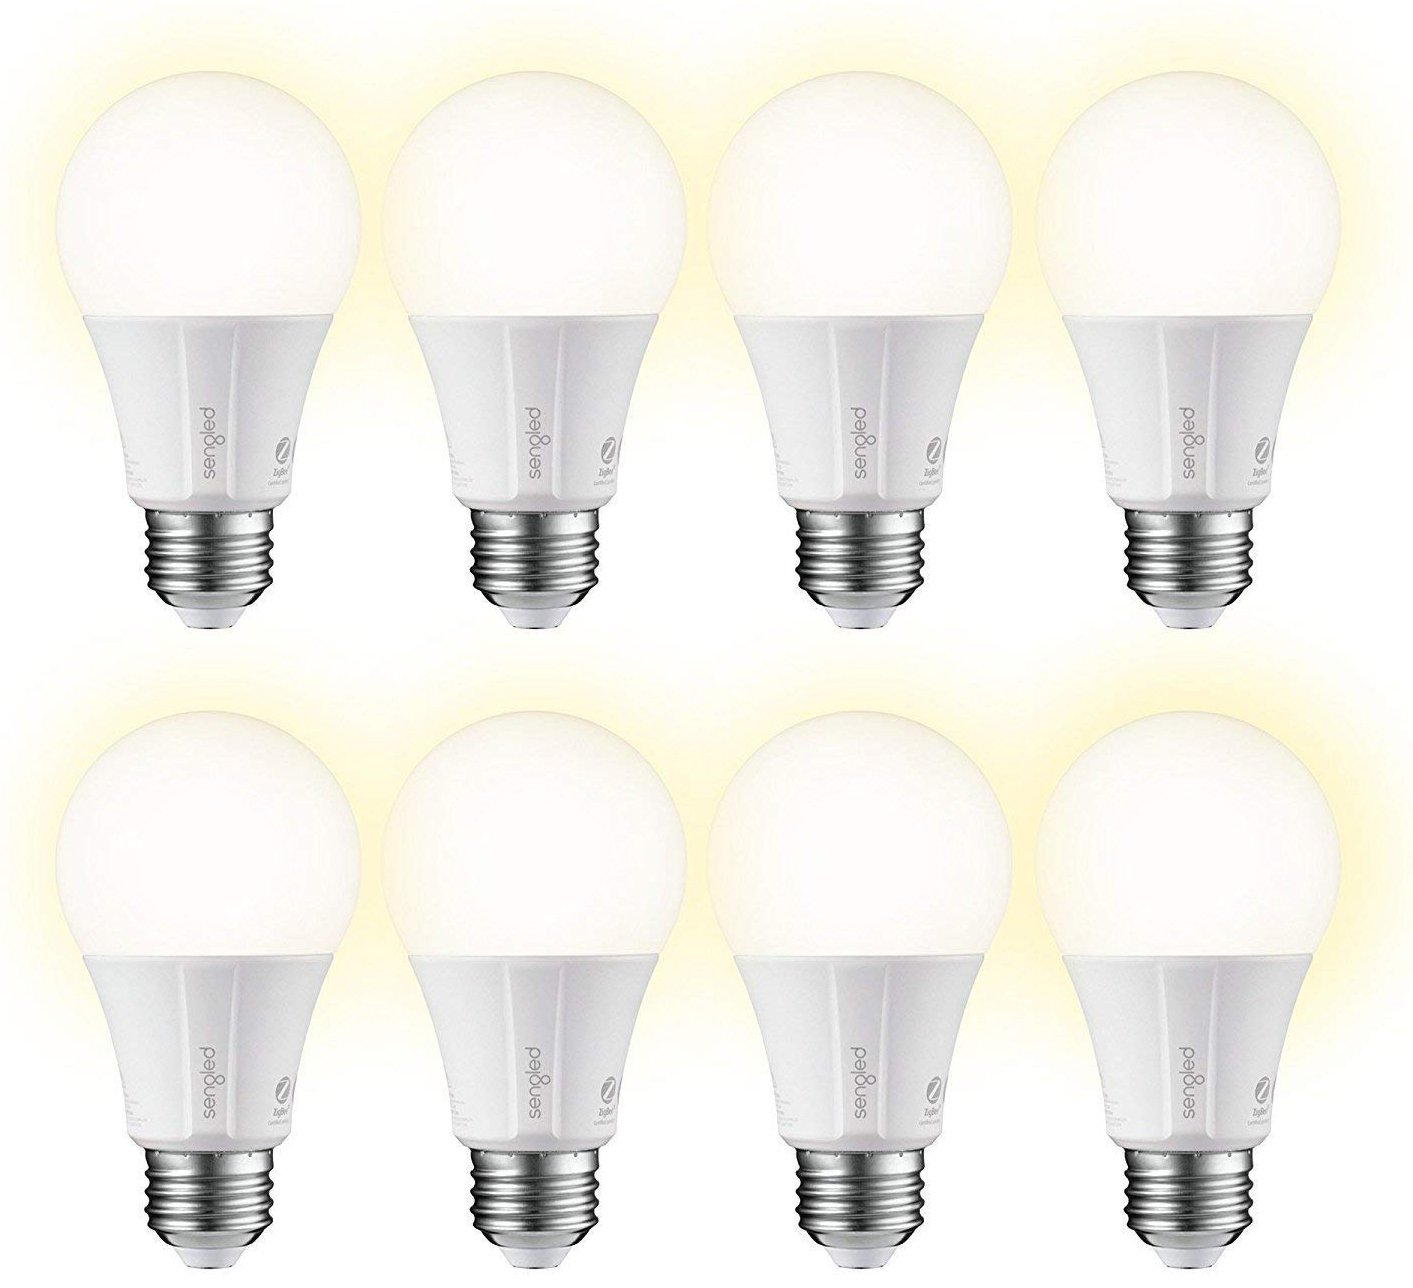 Lightbulb Lights Best Smart Led Light Bulbs That Work With Google Home Android